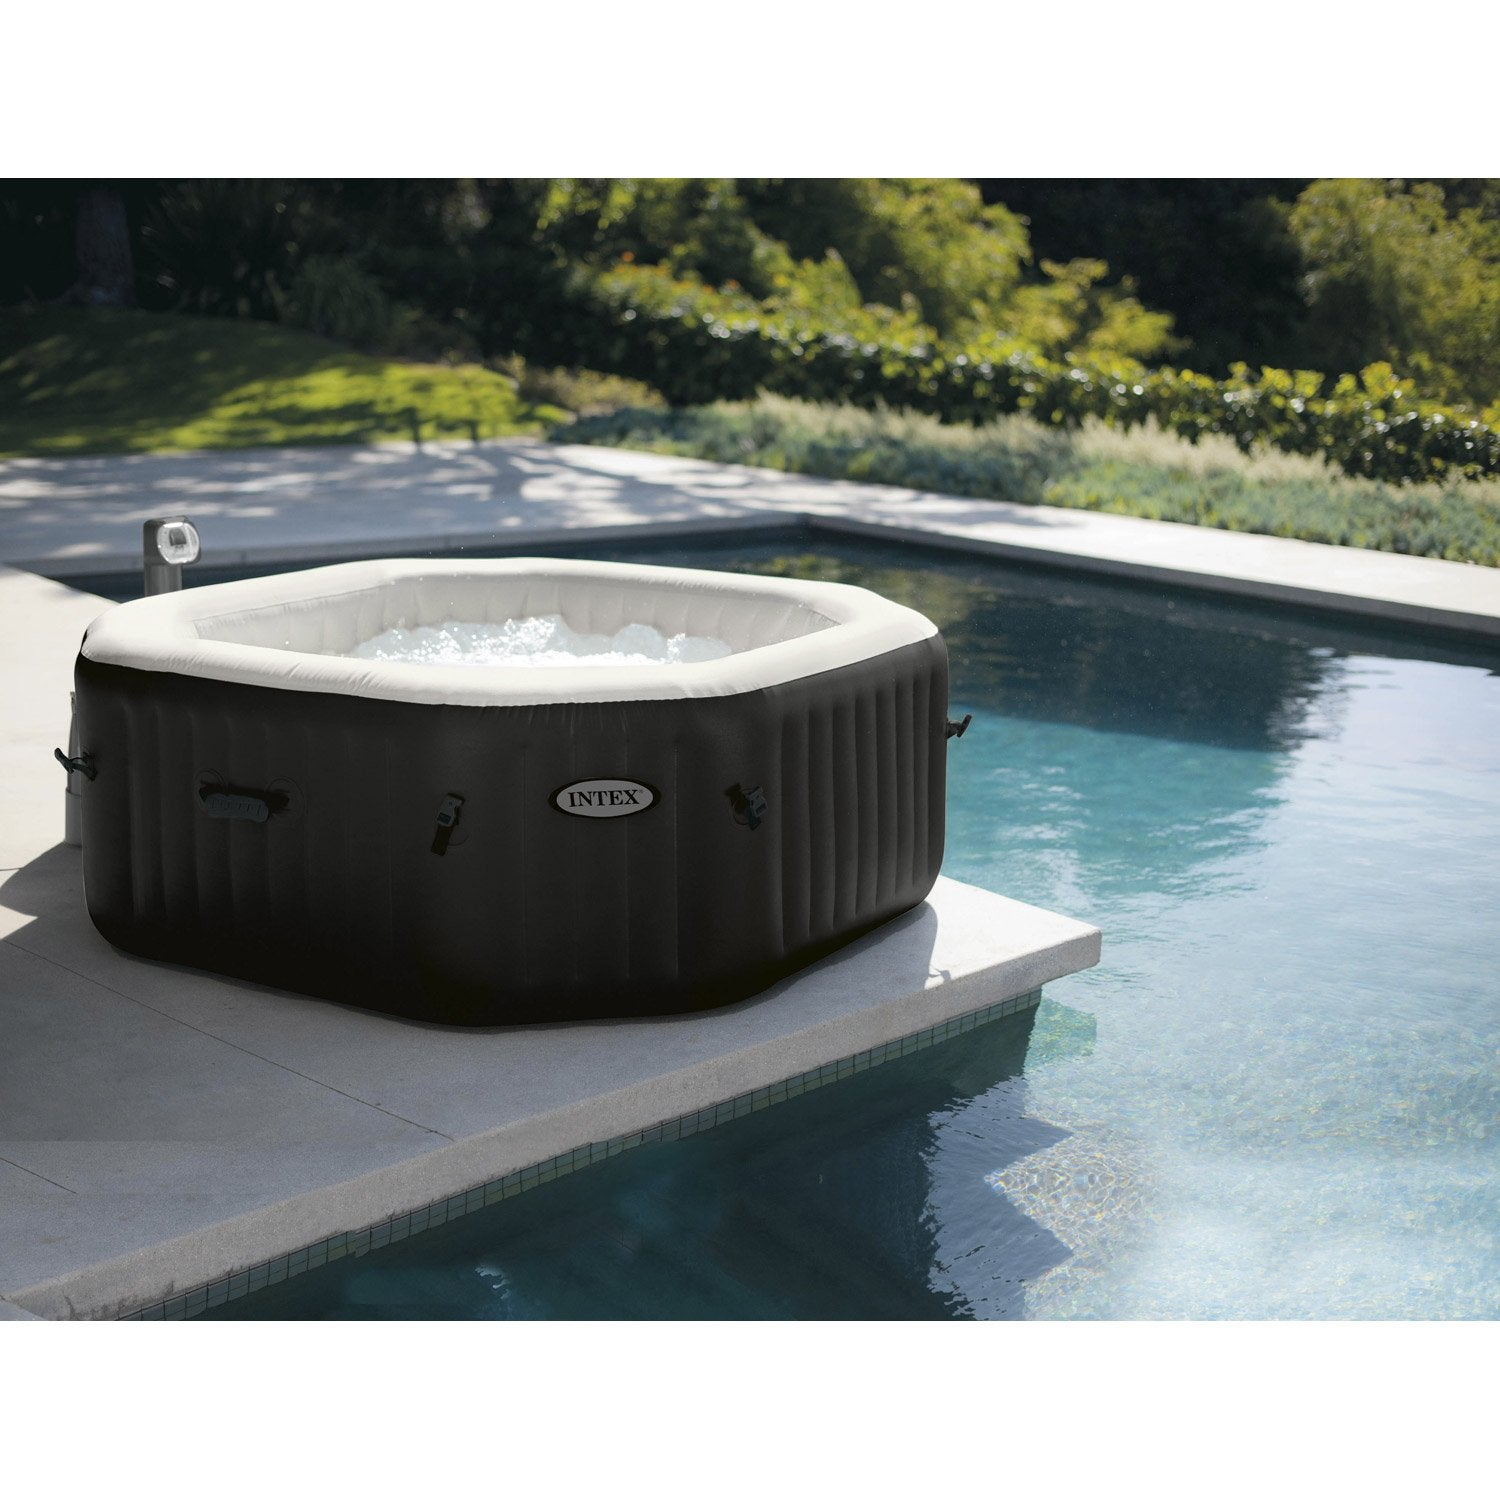 Spa gonflable intex purespa bulles octogonale 6 places assises leroy merlin - Jacuzzi exterieur prix ...